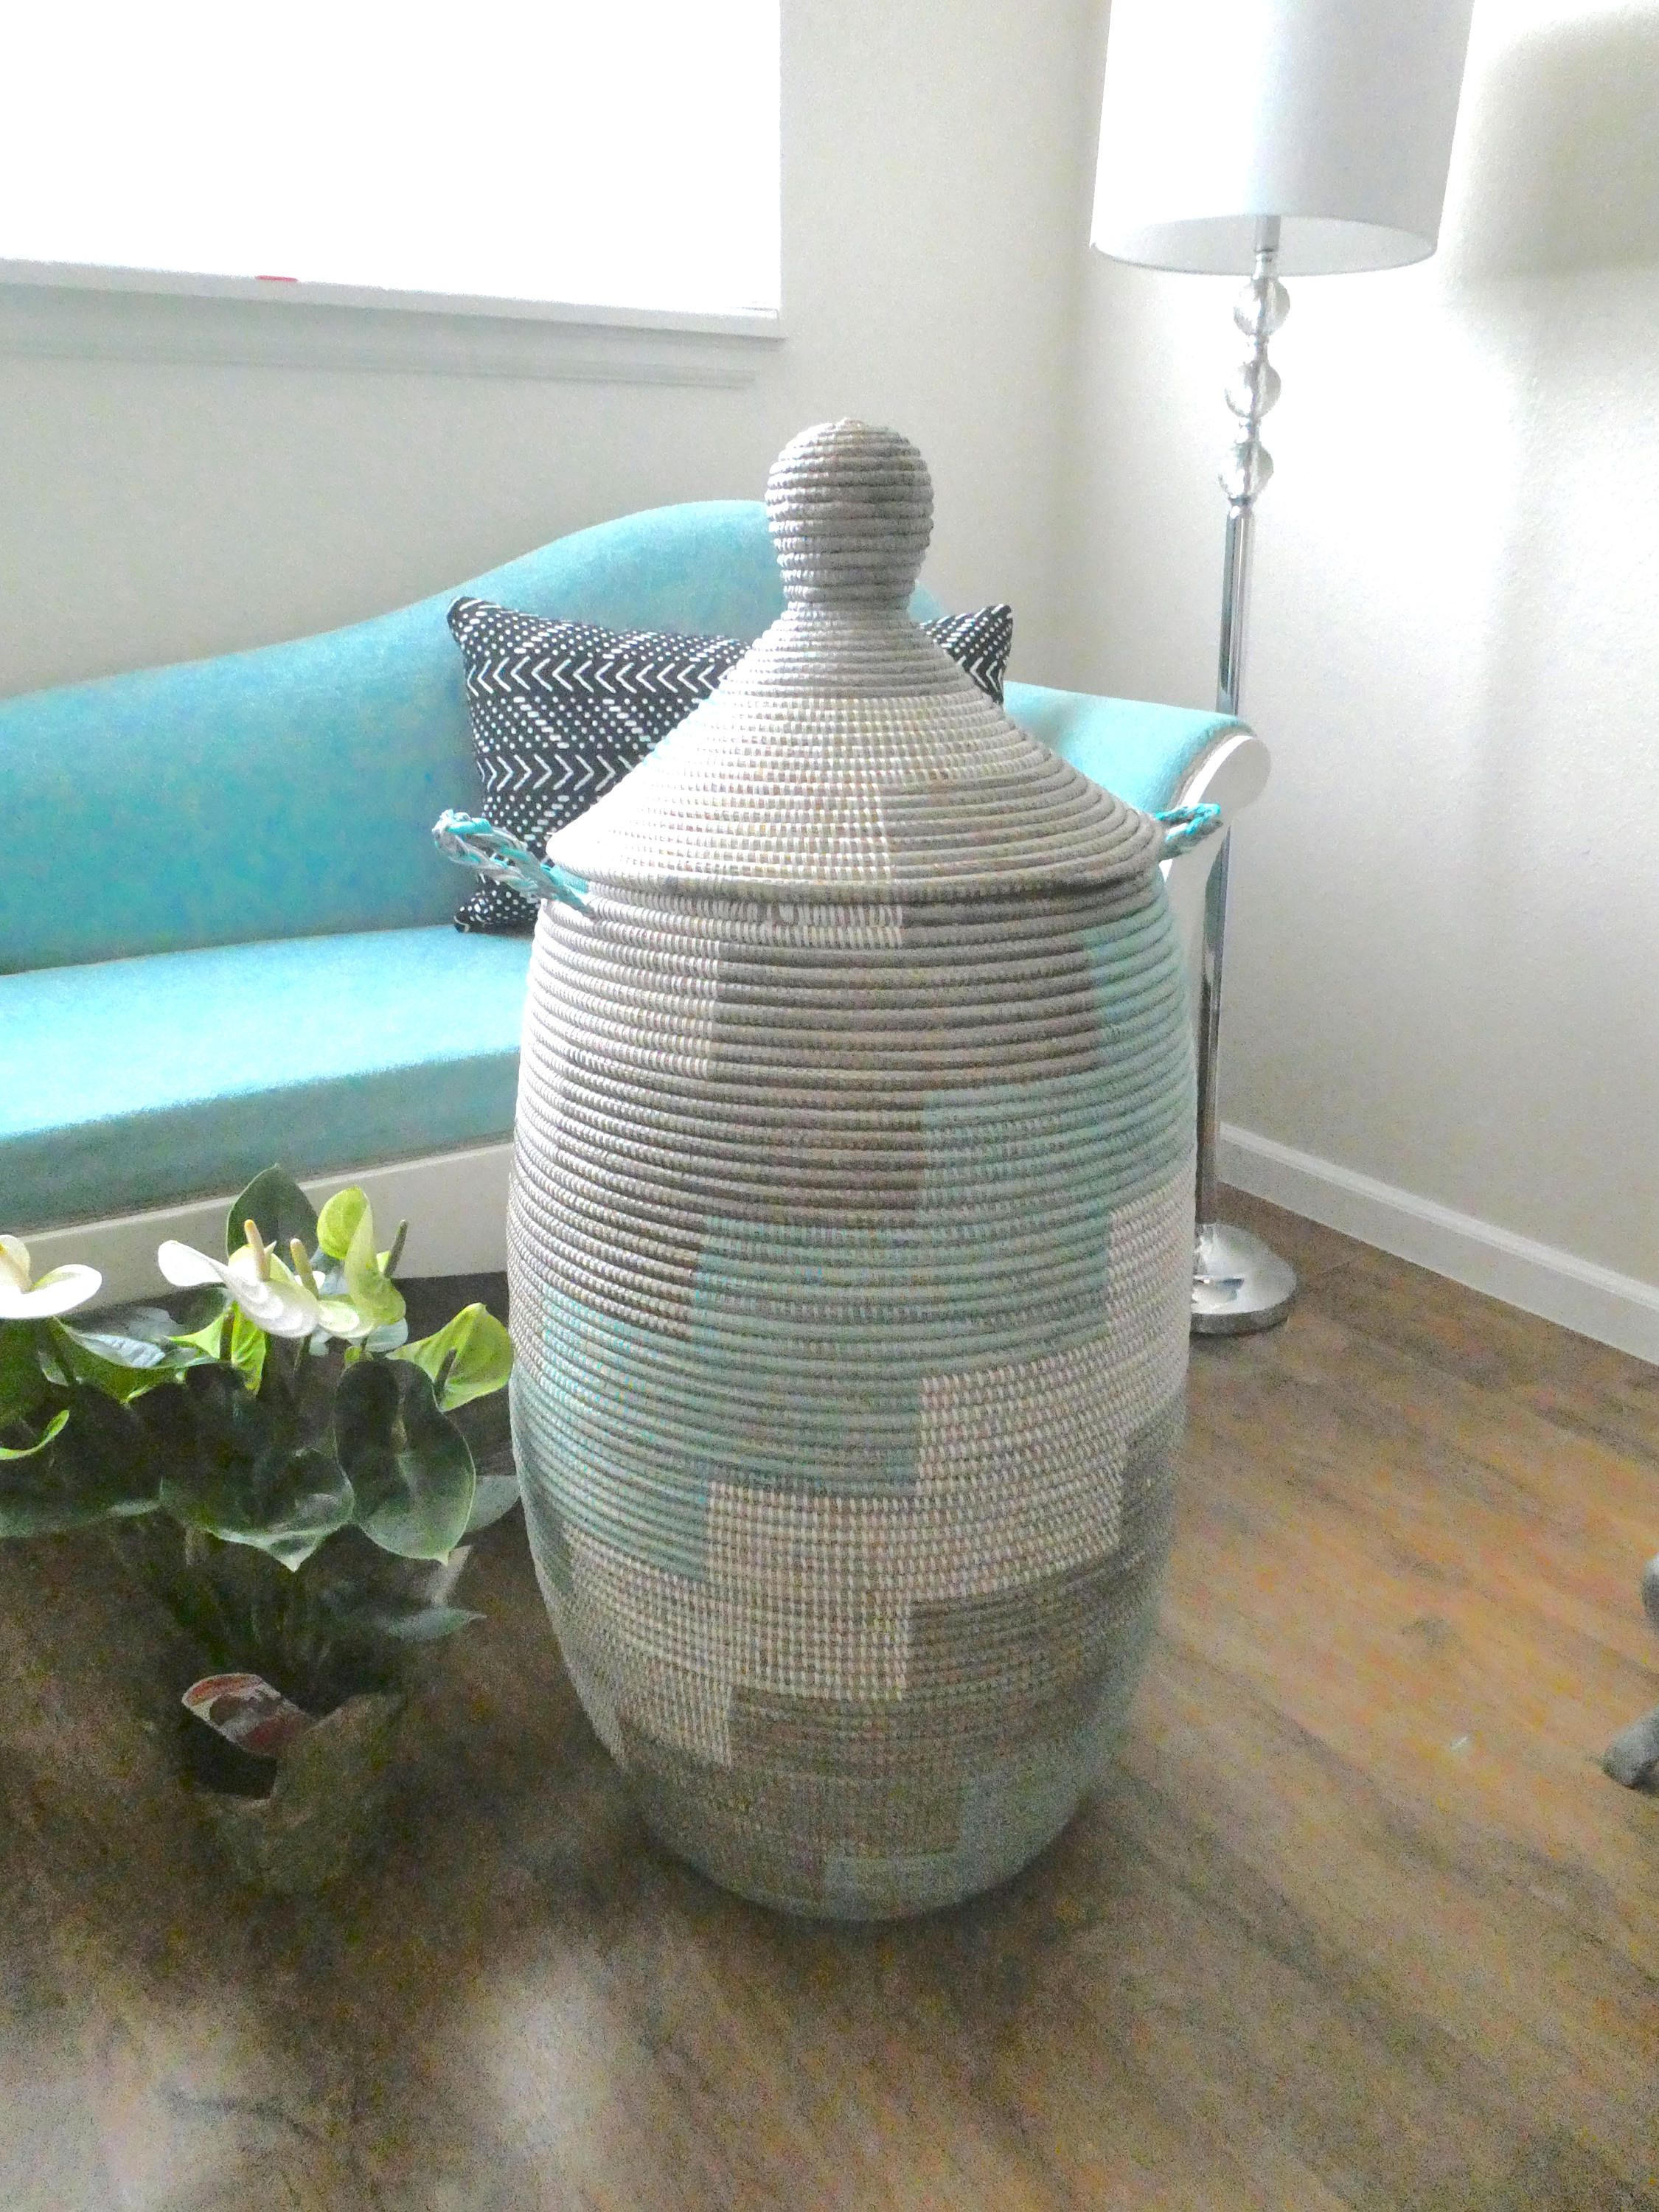 Extra Large Laundry Basket 1m Tall More Than 3 Feet Tall Aqua